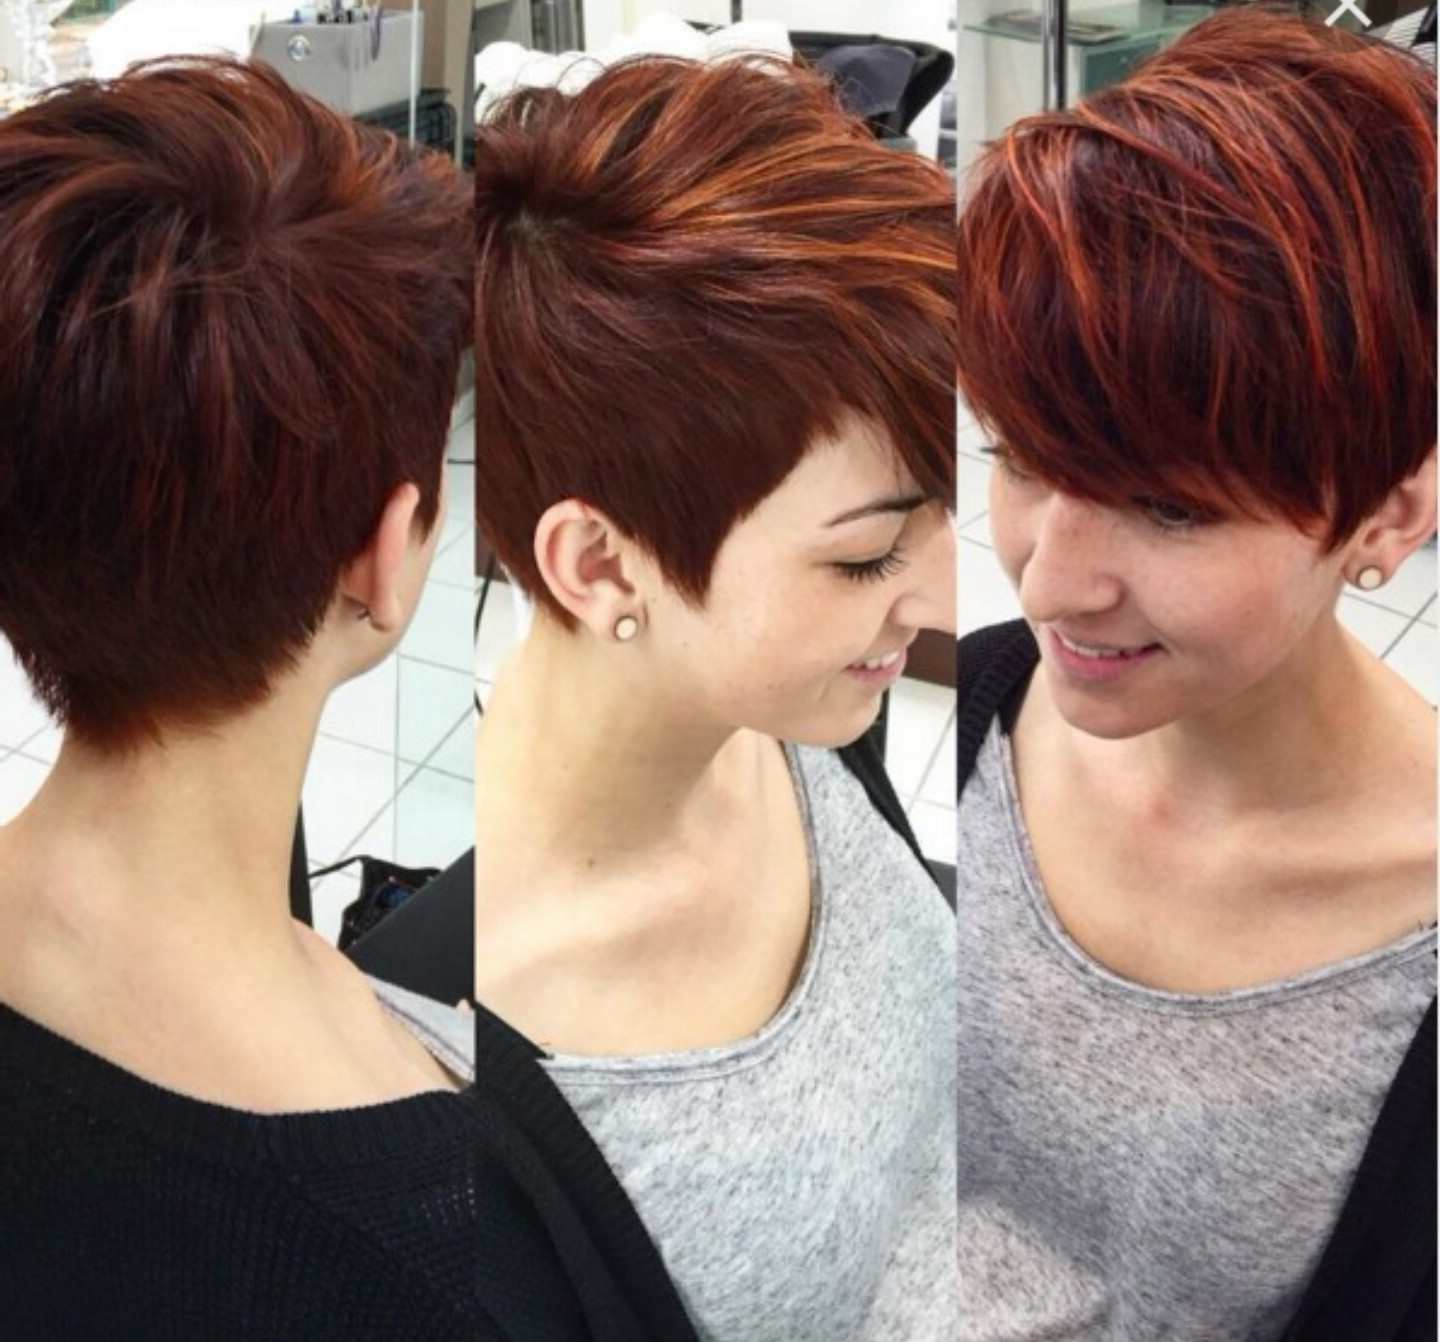 Caramel Colored Pixie With Long Side Bangs   Hair   Pinterest Pertaining To Most Recently Pixie Hairstyles With Long Sides (View 2 of 15)